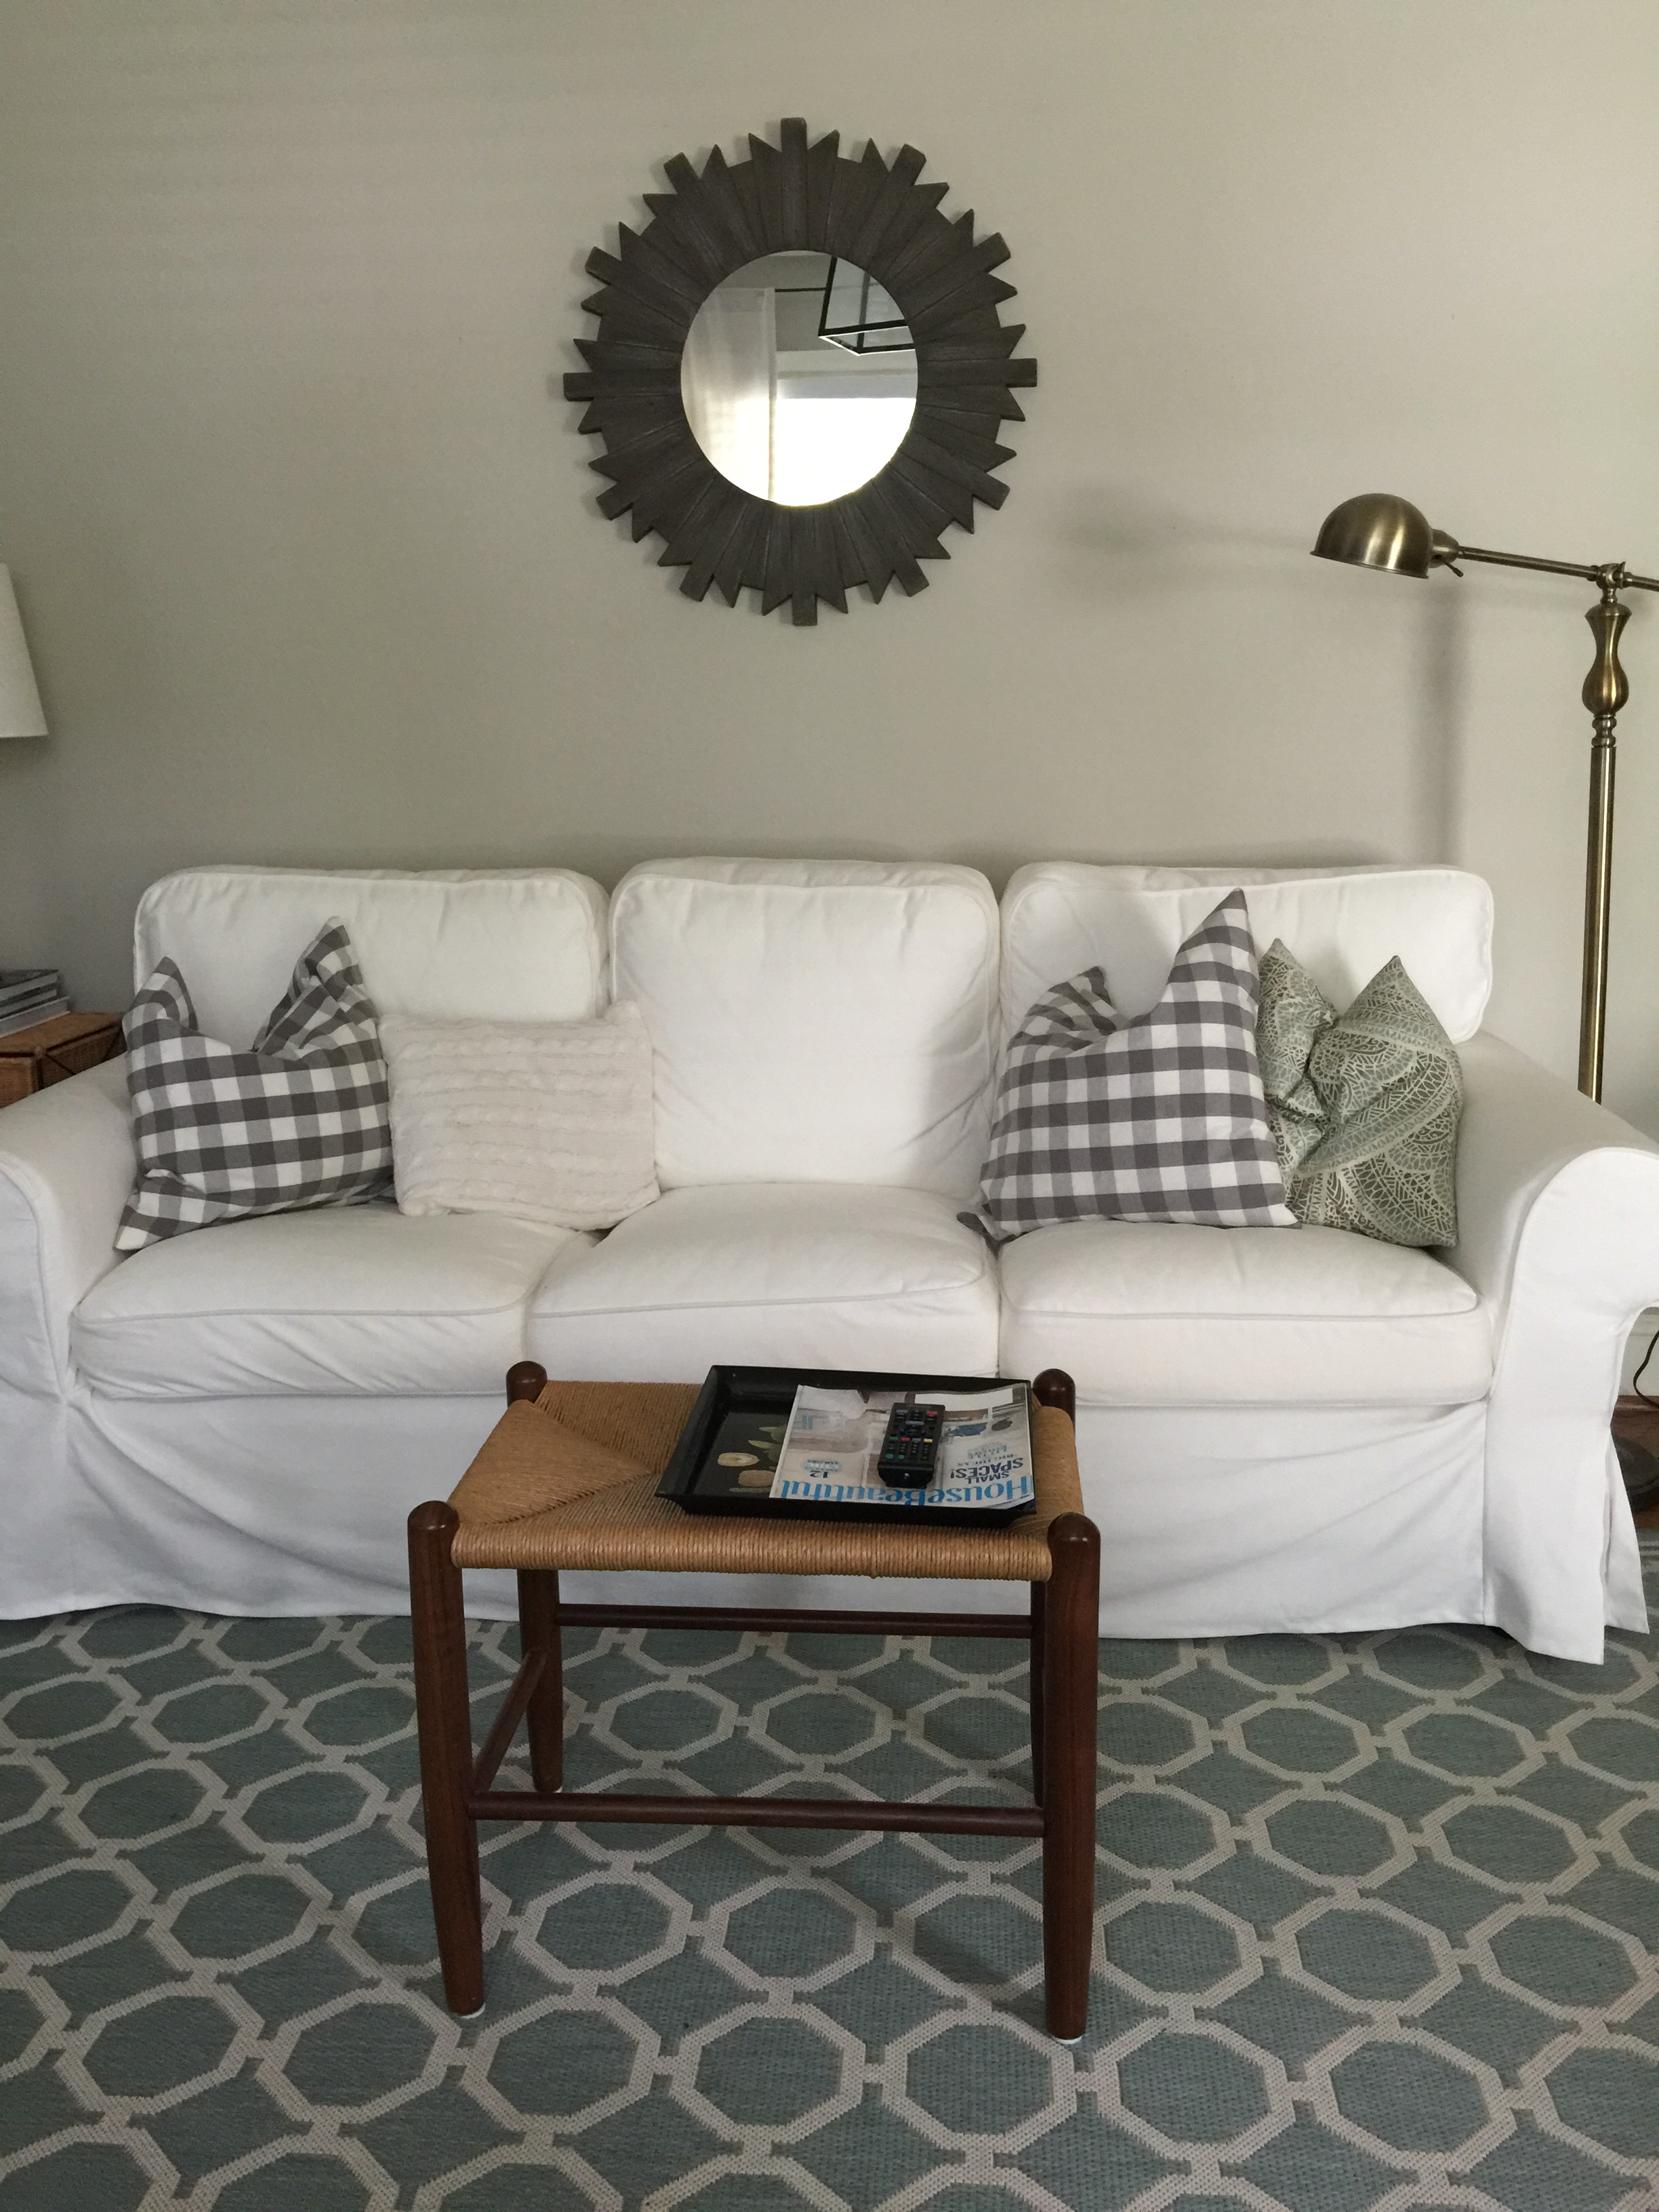 Living room – Interiors by Kelley Lively